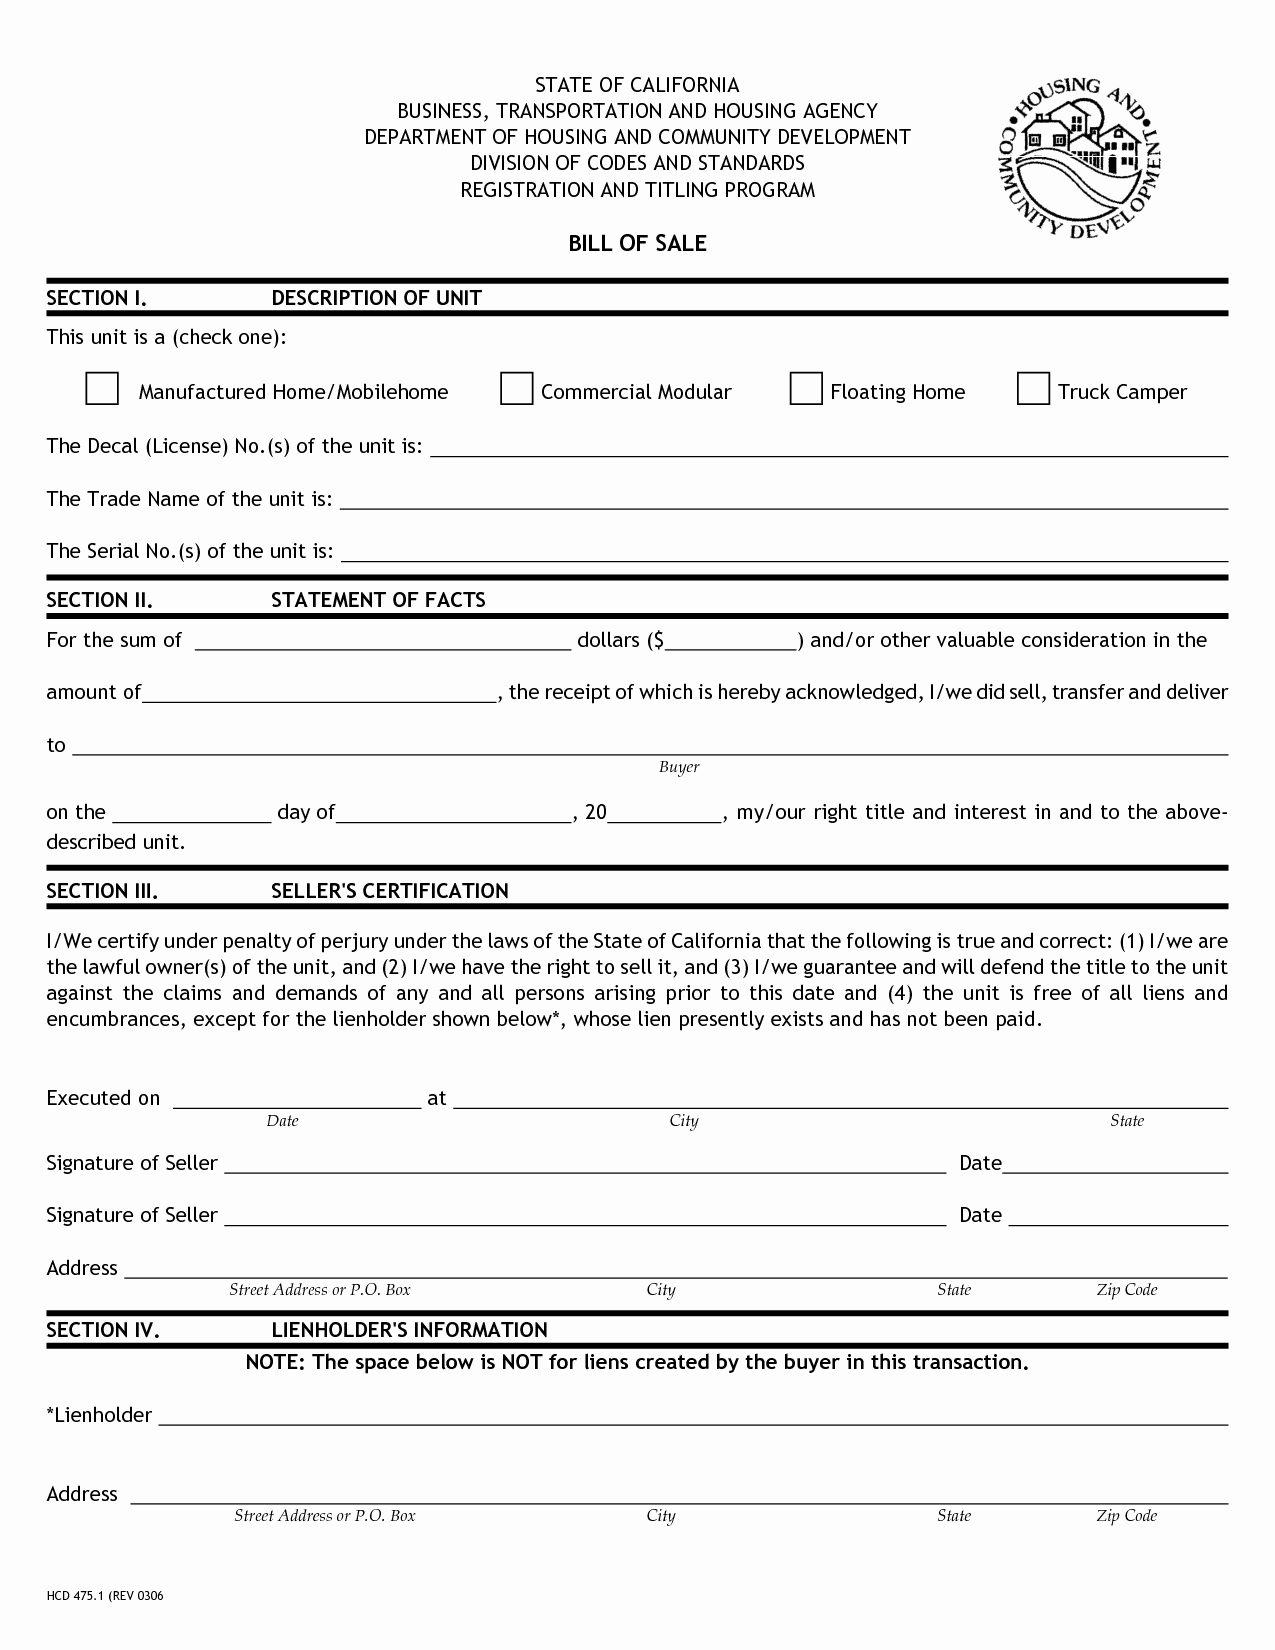 Bill Of Sale Trailer New Free Printable Bill Of Sale for Rv form Generic